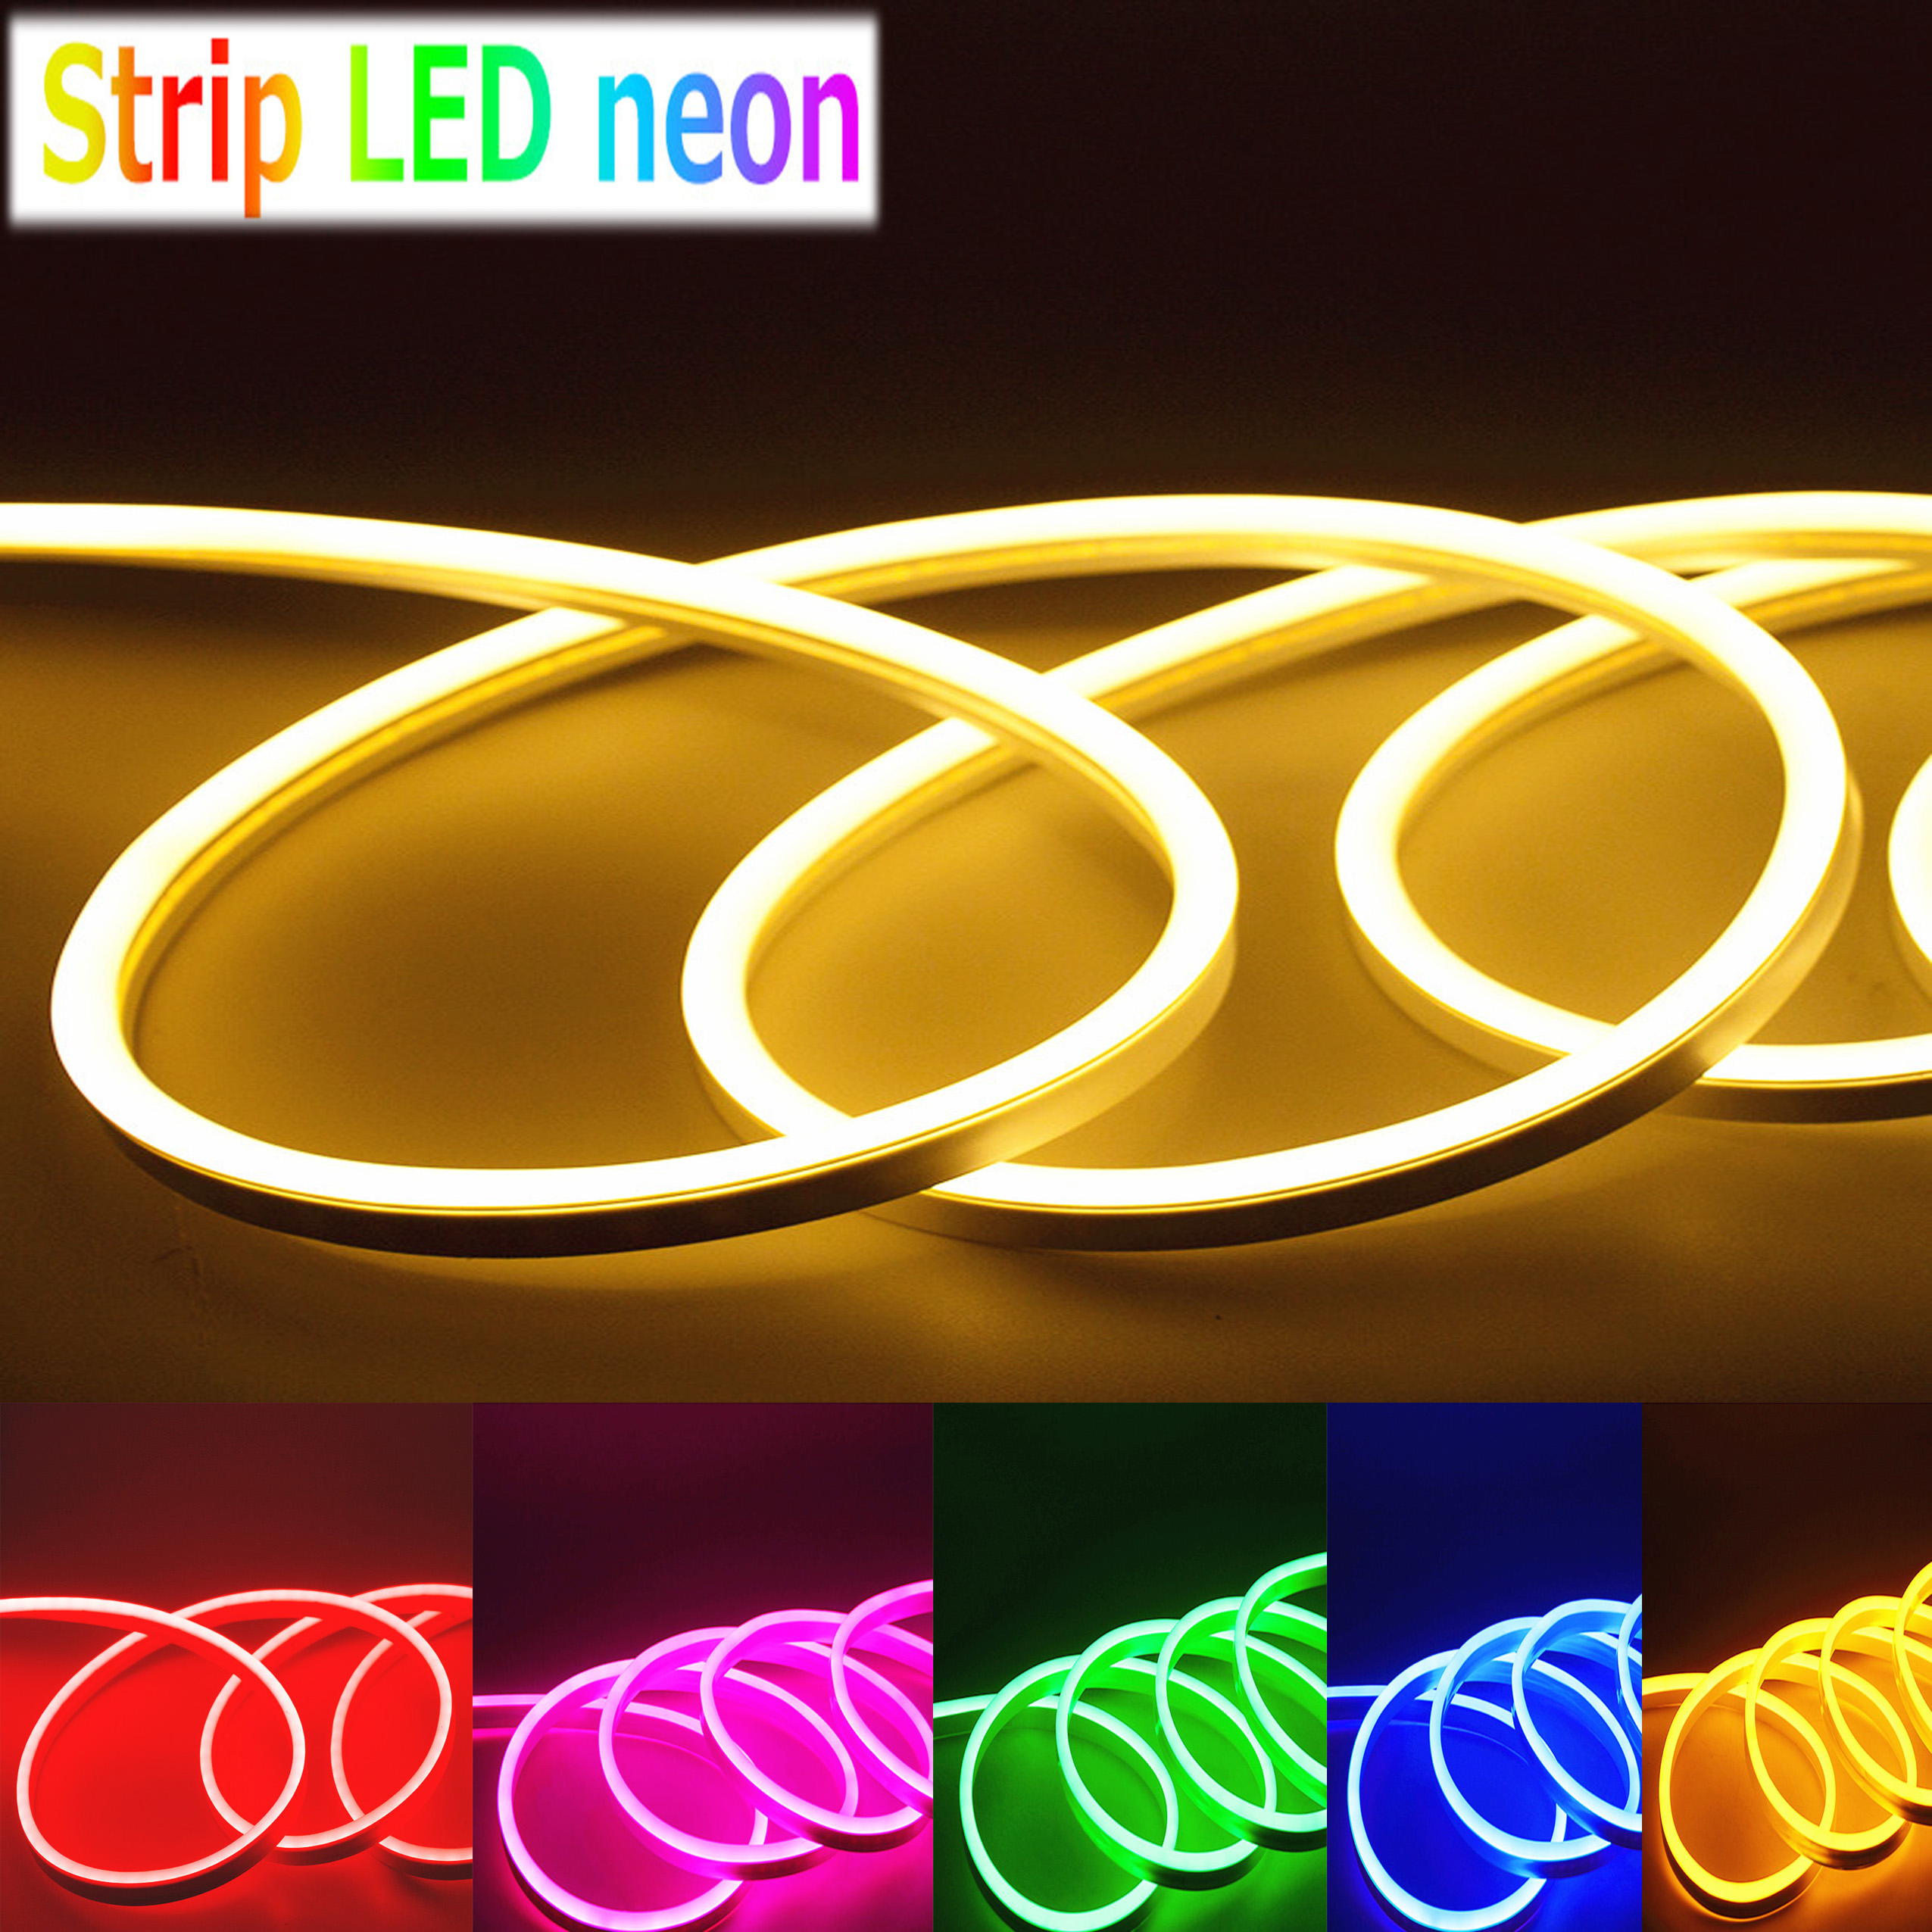 110V 360° LED Neon Rope Light Pink DIY AD Sign Home Decor Outdoor Party US